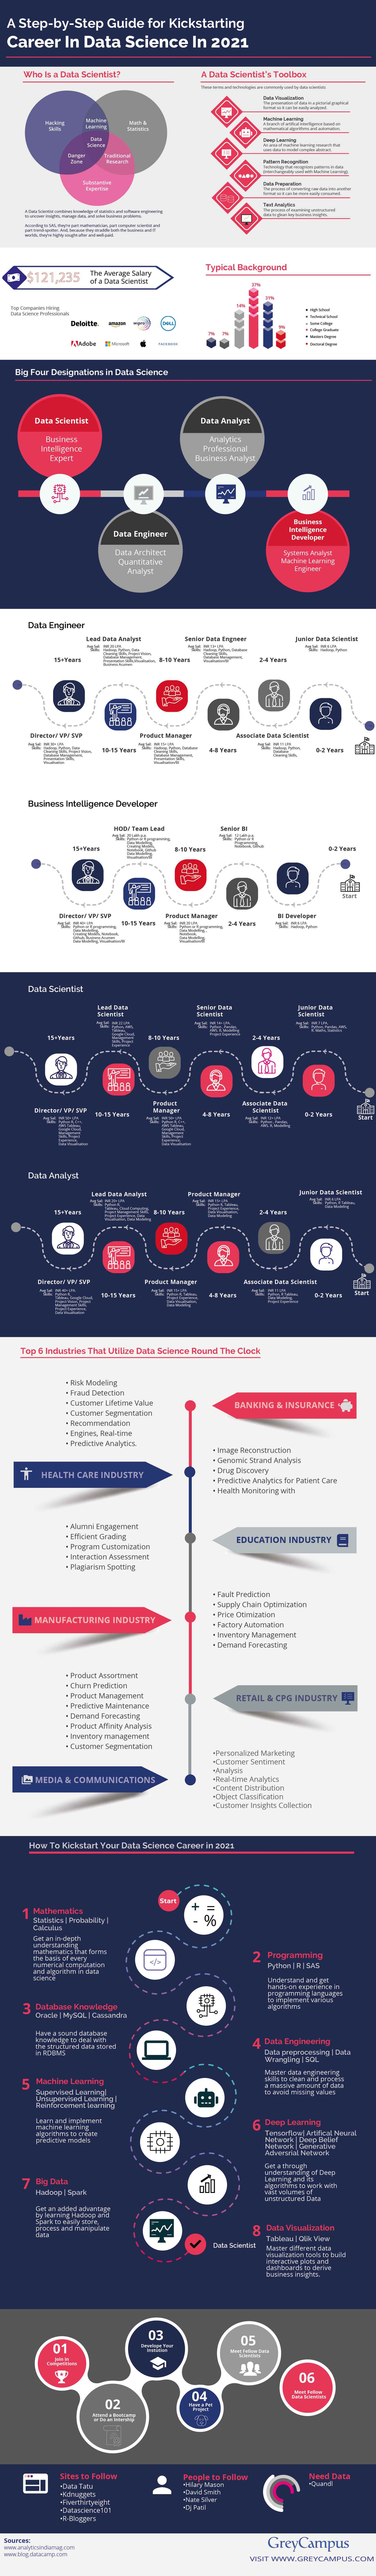 Data Science: Everything you need to know!